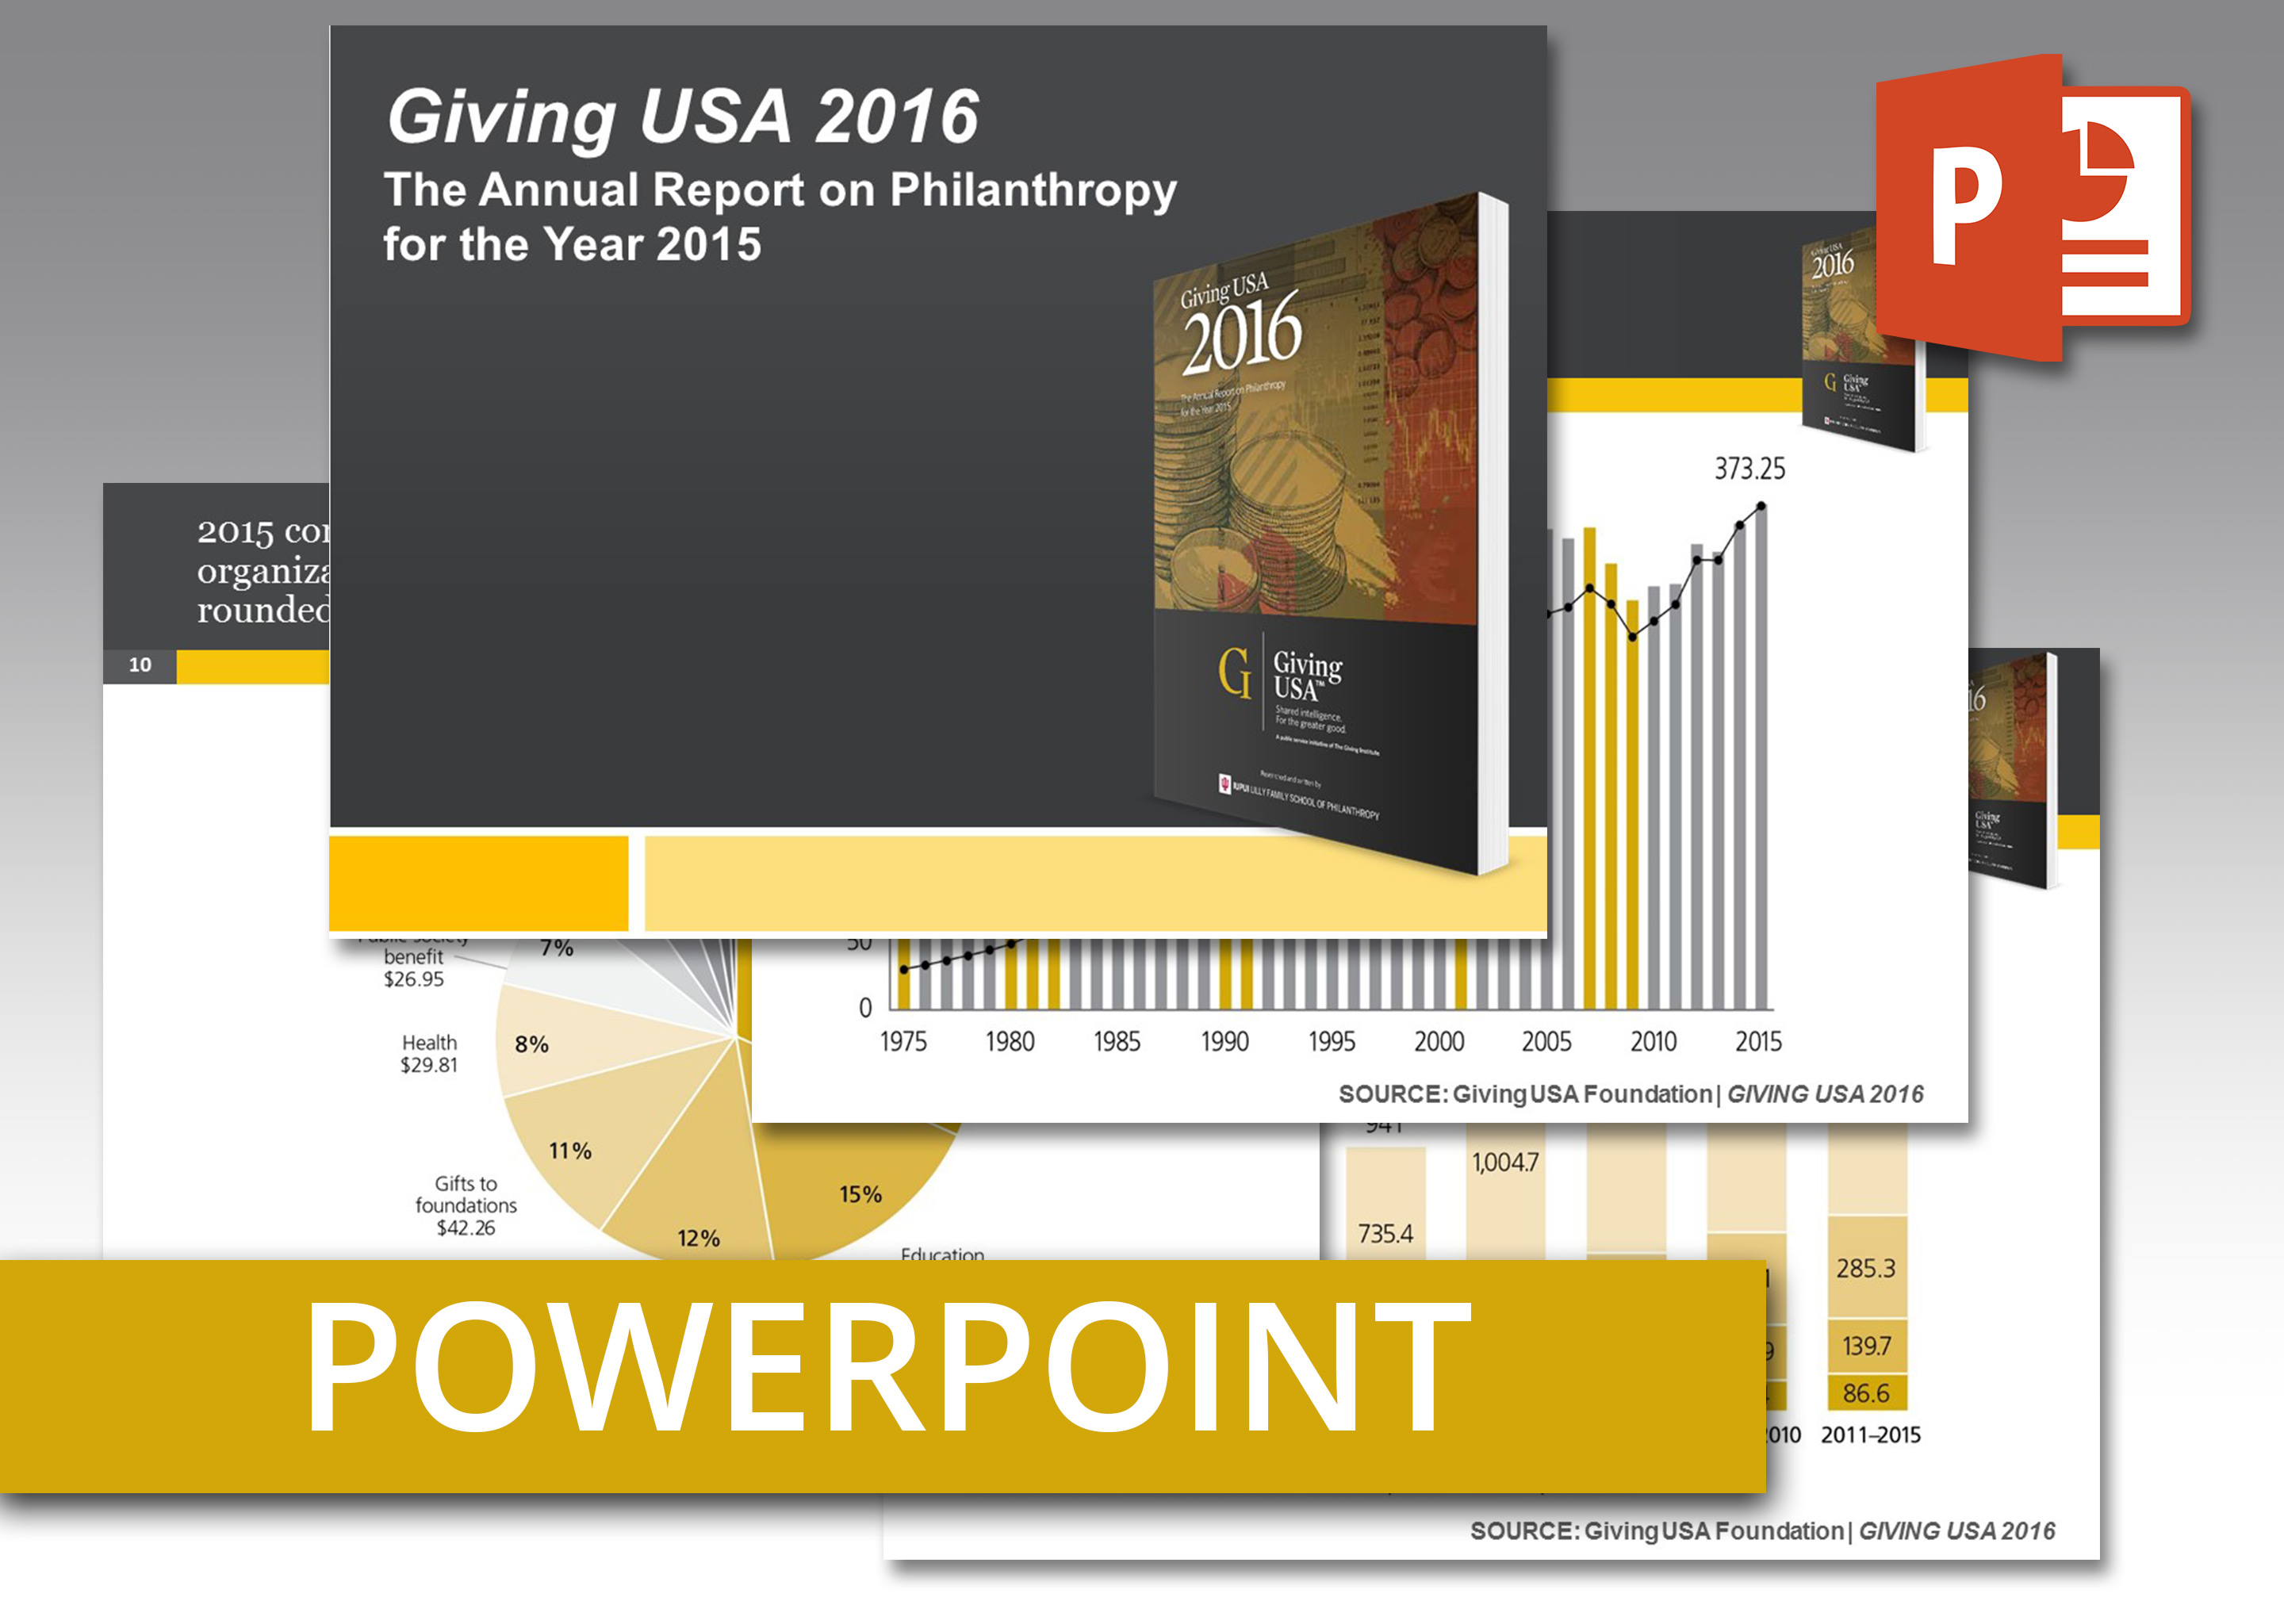 Coolmathgamesus  Unusual Giving Usa  Powerpoint An Easytouse Presentation Of Report  With Outstanding Giving Usa  Powerpoint An Easytouse Presentation Of Report Findings Including Talking Points With Comely Alexander The Great Powerpoint Also Powerpoint History In Addition X Bar Symbol In Powerpoint And Free Roadmap Powerpoint Template As Well As Powerpoint Insert Animated Gif Additionally Where Is Smartart In Powerpoint From Givingusaorg With Coolmathgamesus  Outstanding Giving Usa  Powerpoint An Easytouse Presentation Of Report  With Comely Giving Usa  Powerpoint An Easytouse Presentation Of Report Findings Including Talking Points And Unusual Alexander The Great Powerpoint Also Powerpoint History In Addition X Bar Symbol In Powerpoint From Givingusaorg